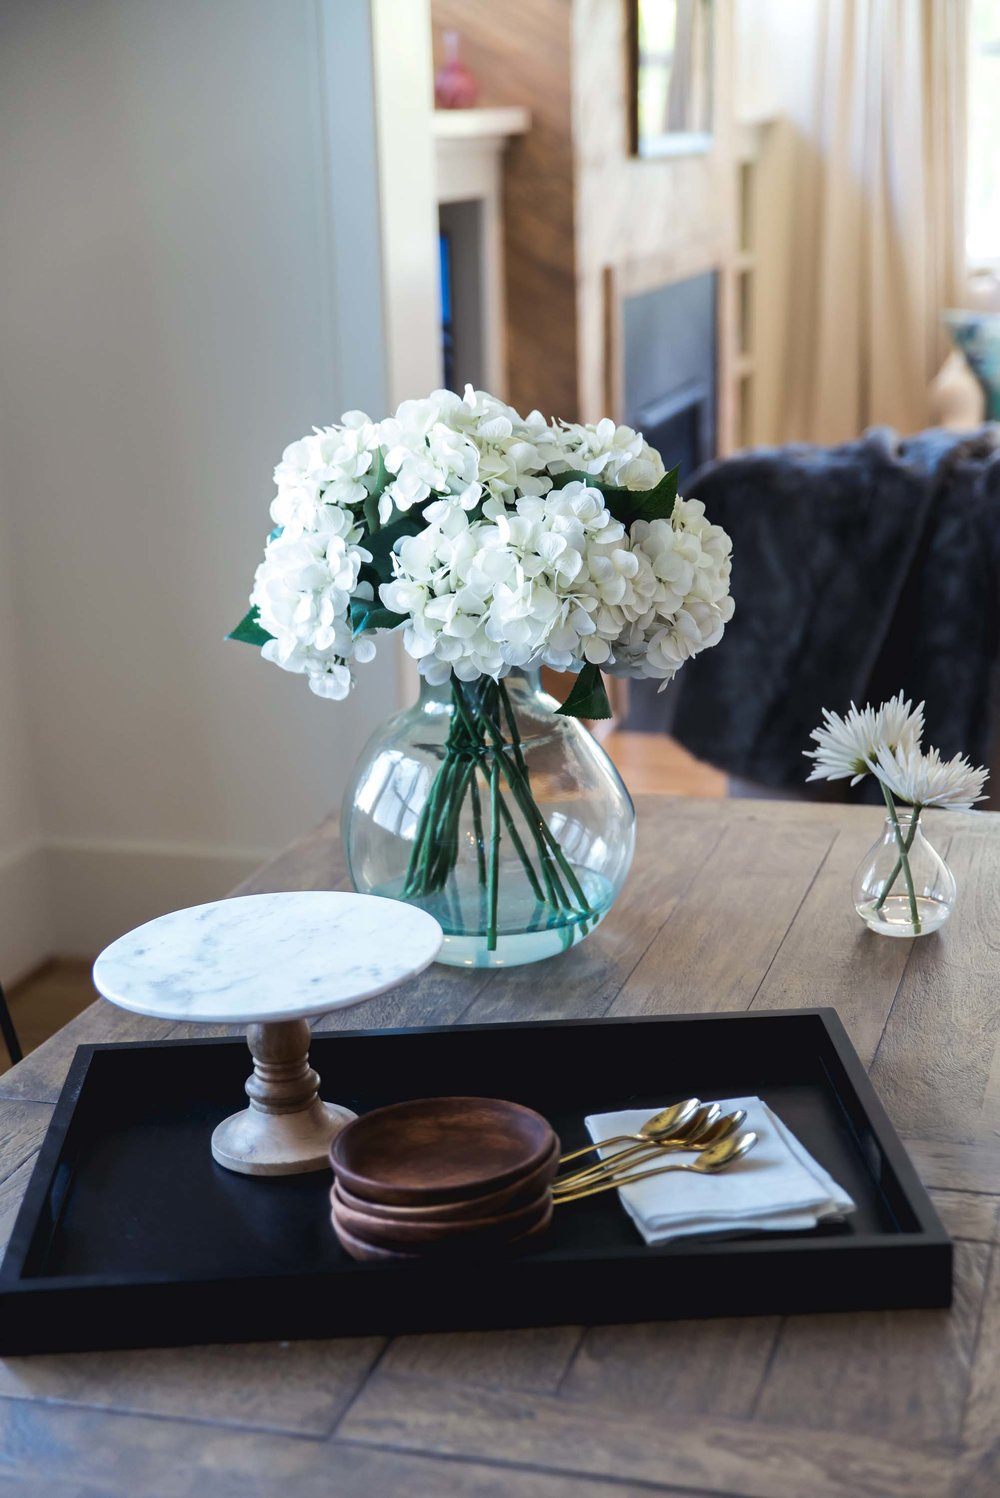 1. Wooden table with wooden serving tray and flower vase